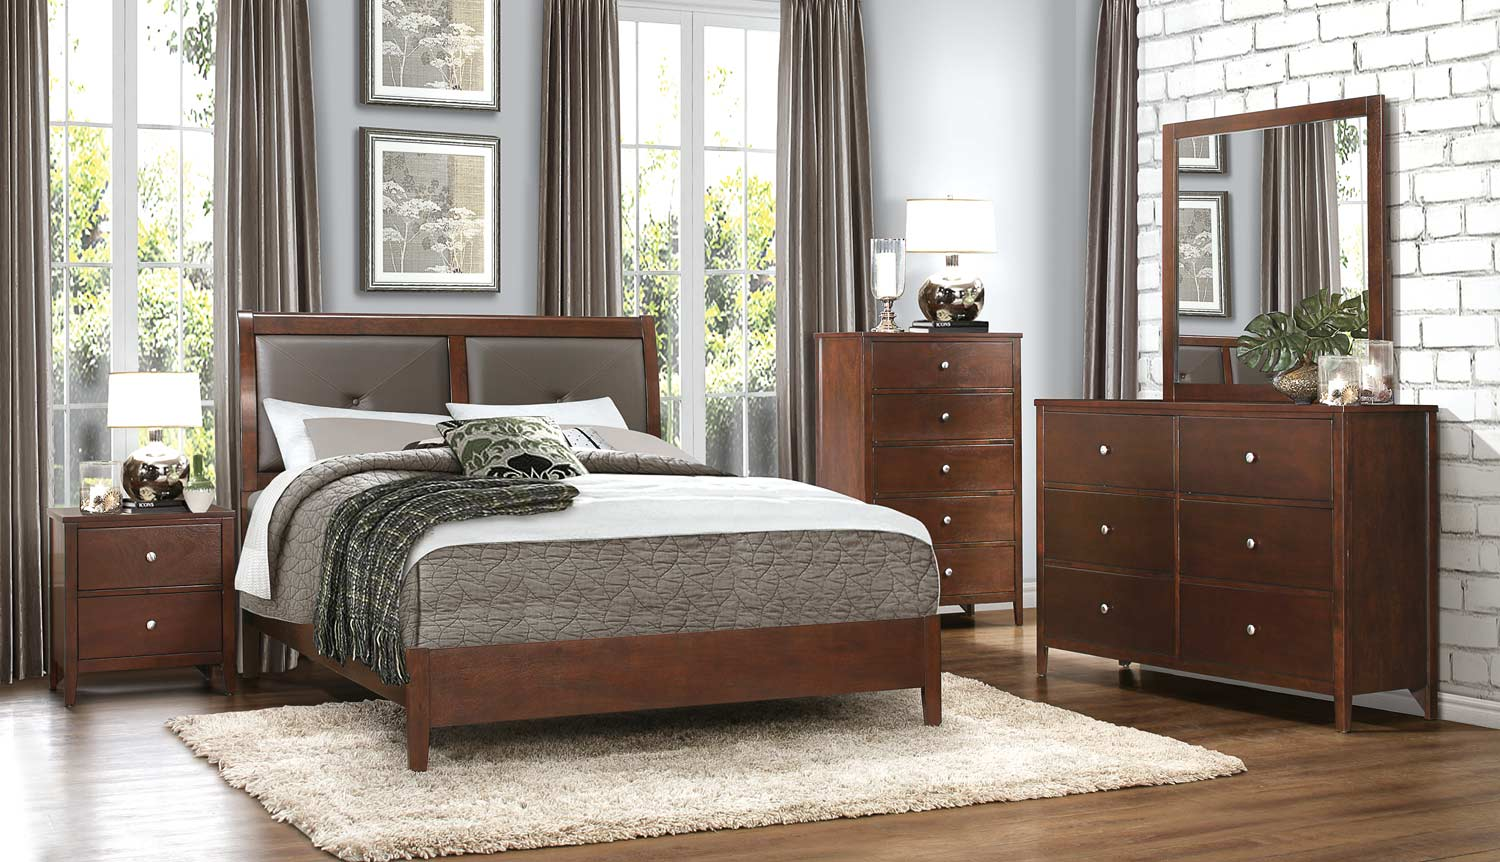 Homelegance Cullen Bedroom Set   Brown Cherry. Homelegance Cullen Bedroom Set   Brown Cherry 1855 BEDROOM SET